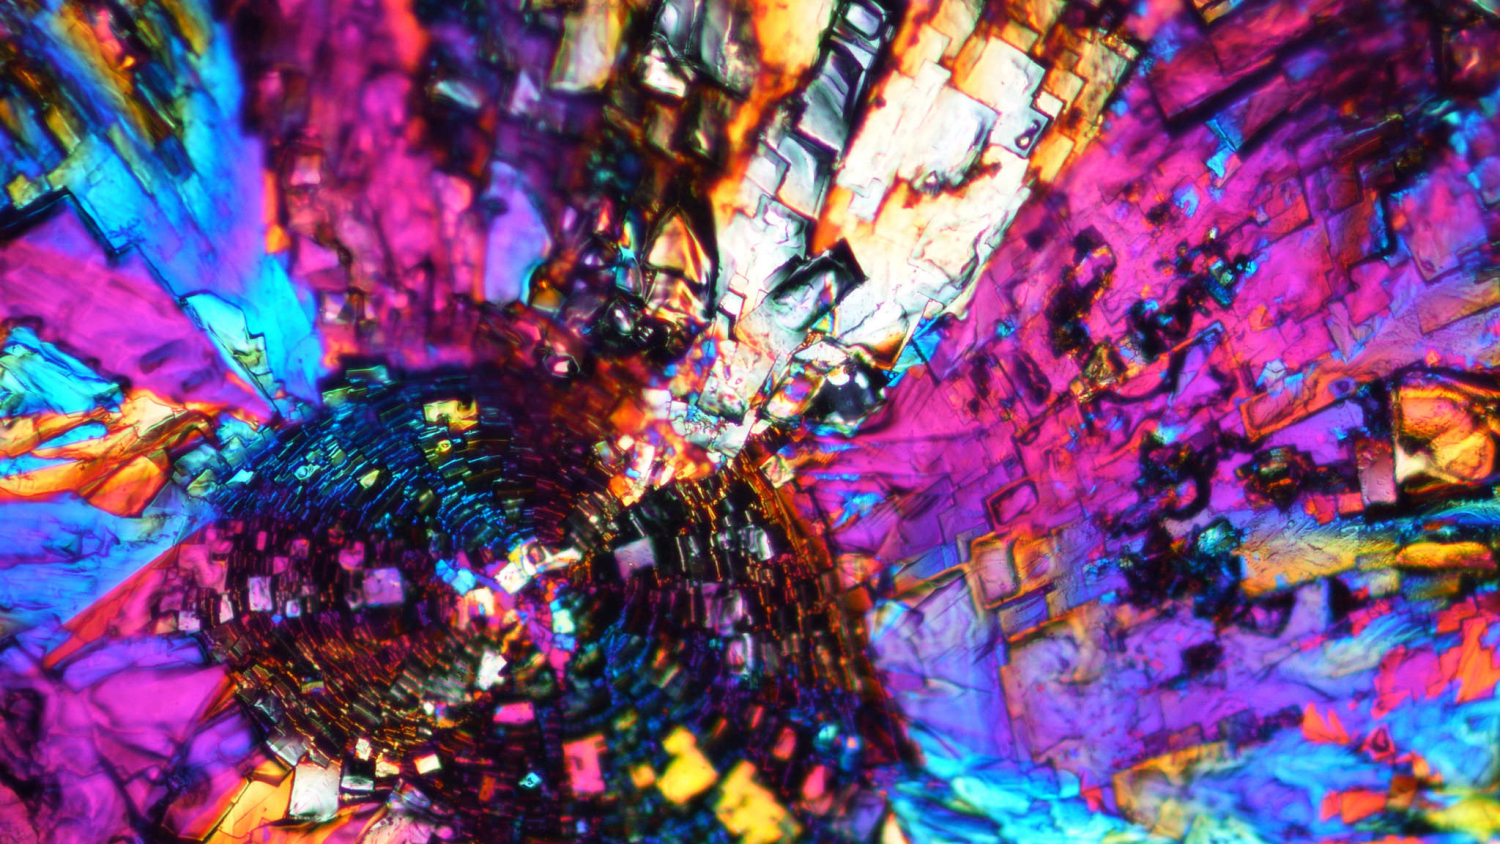 unedited polarized light microscope image shows the crystal formation of a special type polyhedral oligomeric silsesquioxane (POSS) solvent-casted with chloroform.